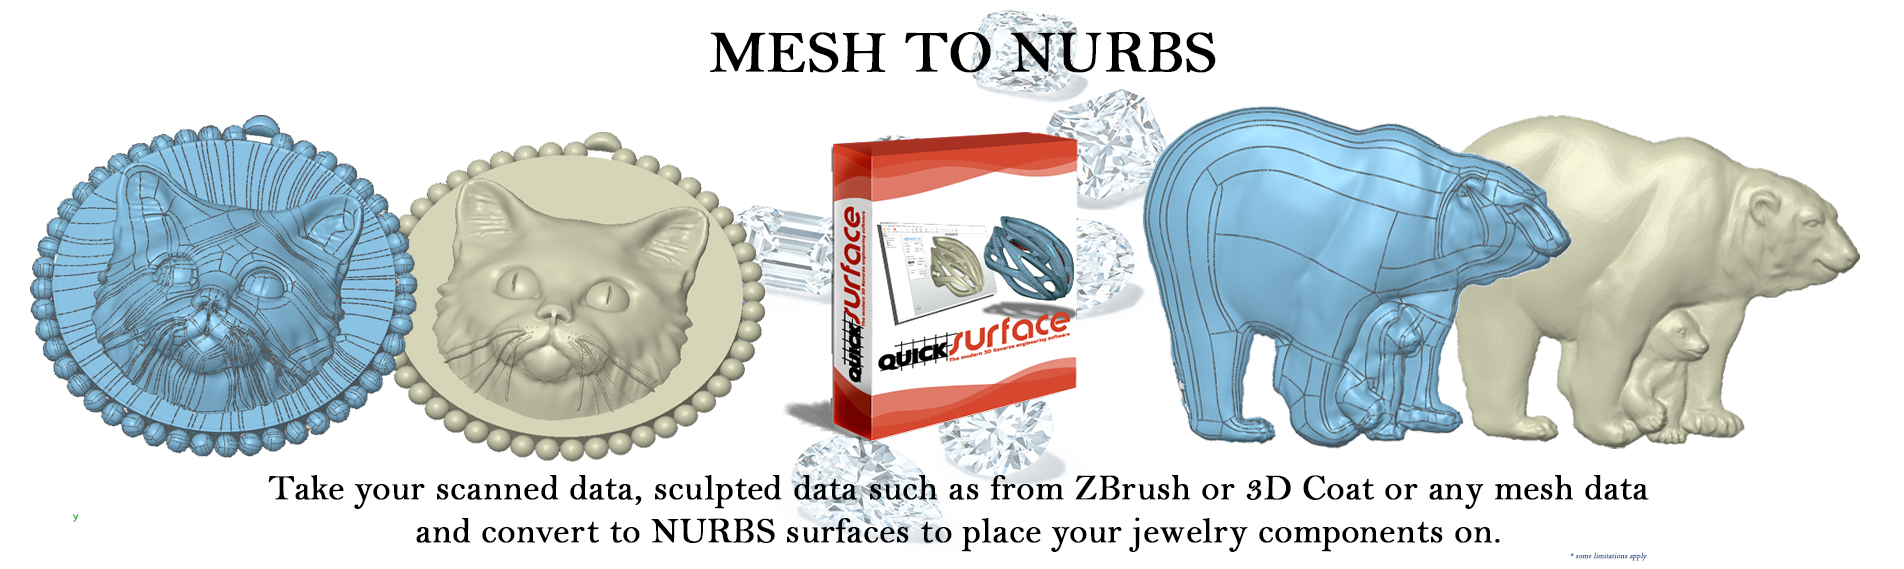 mesh to nerbs